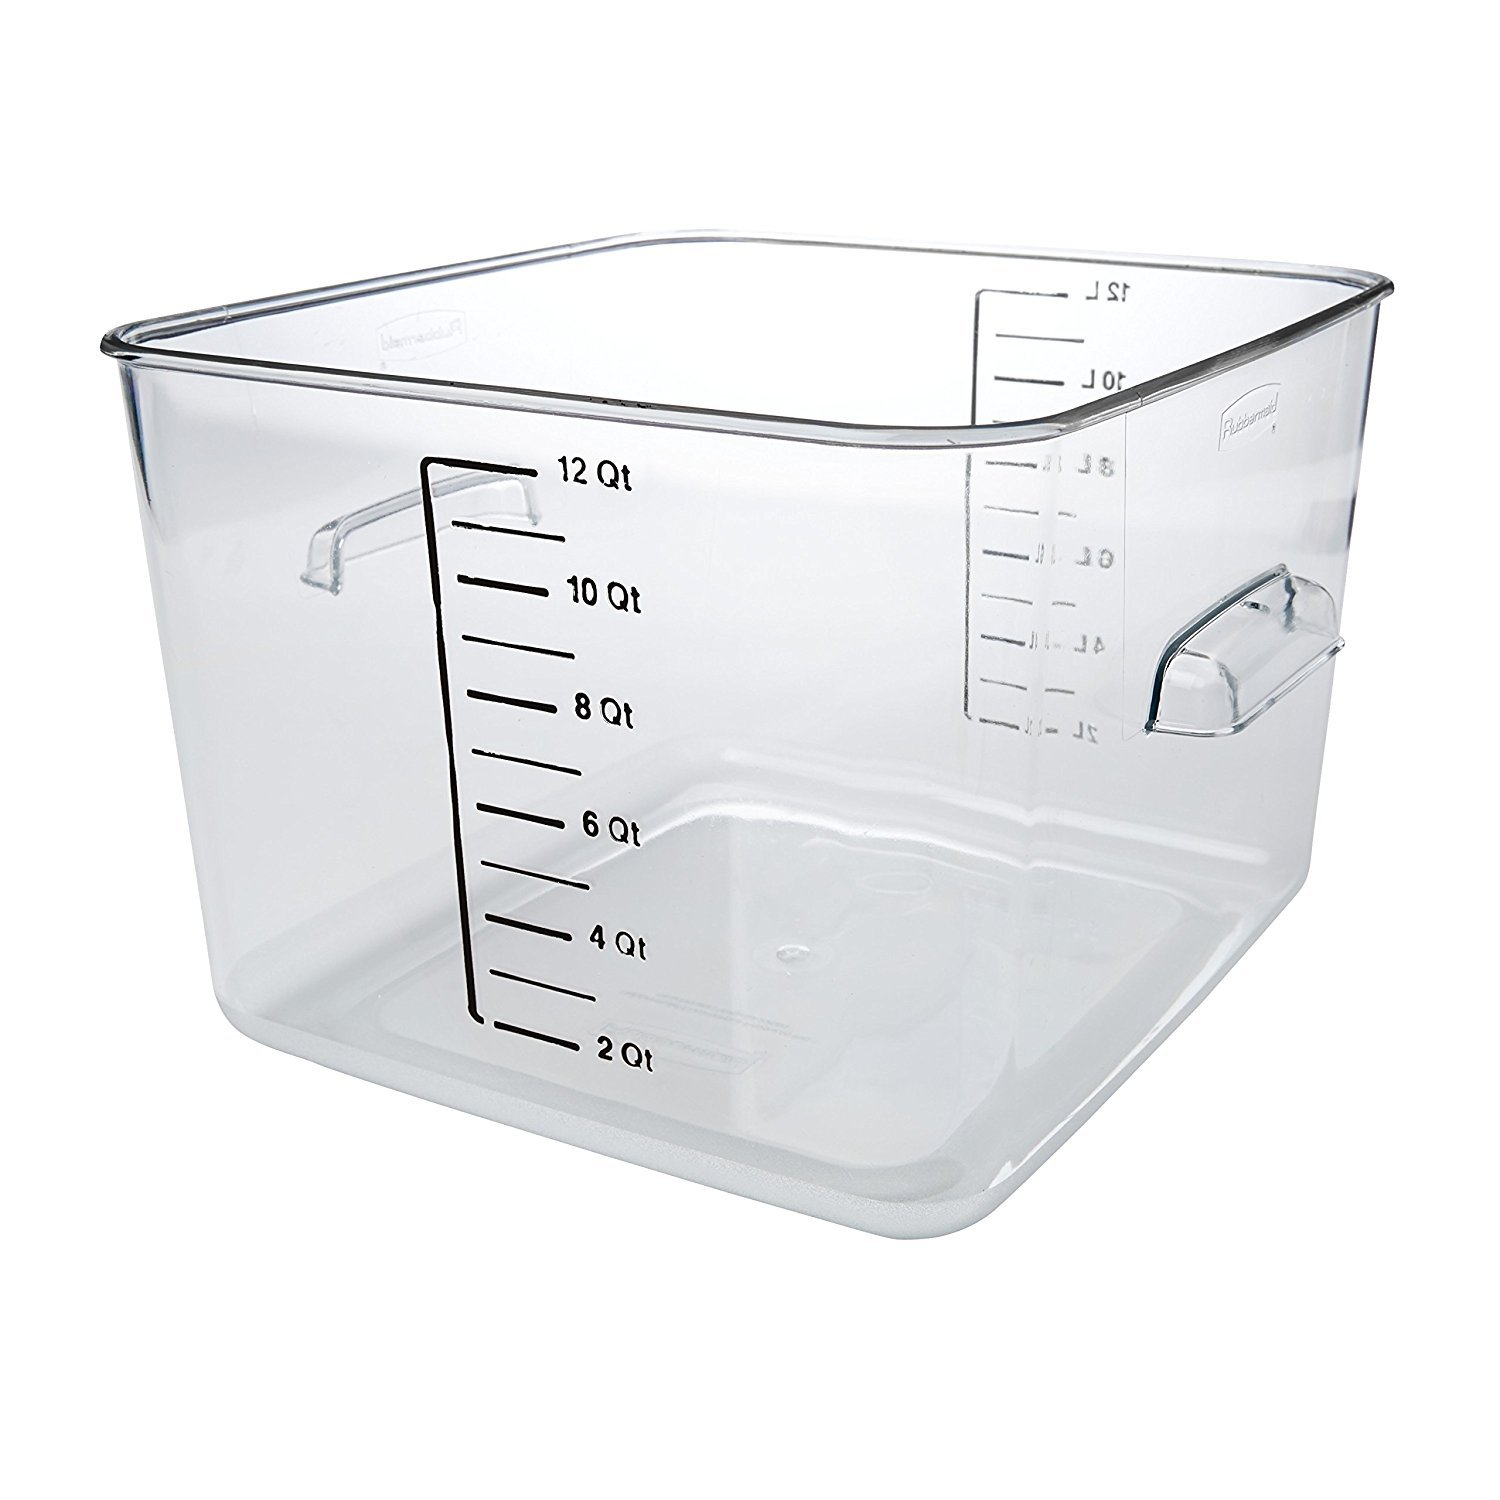 Rubbermaid Commercial Carb-X Space Saving Square Food Storage Container, 12-Quart, Clear (FG631200CLR) by Rubbermaid Commercial Products